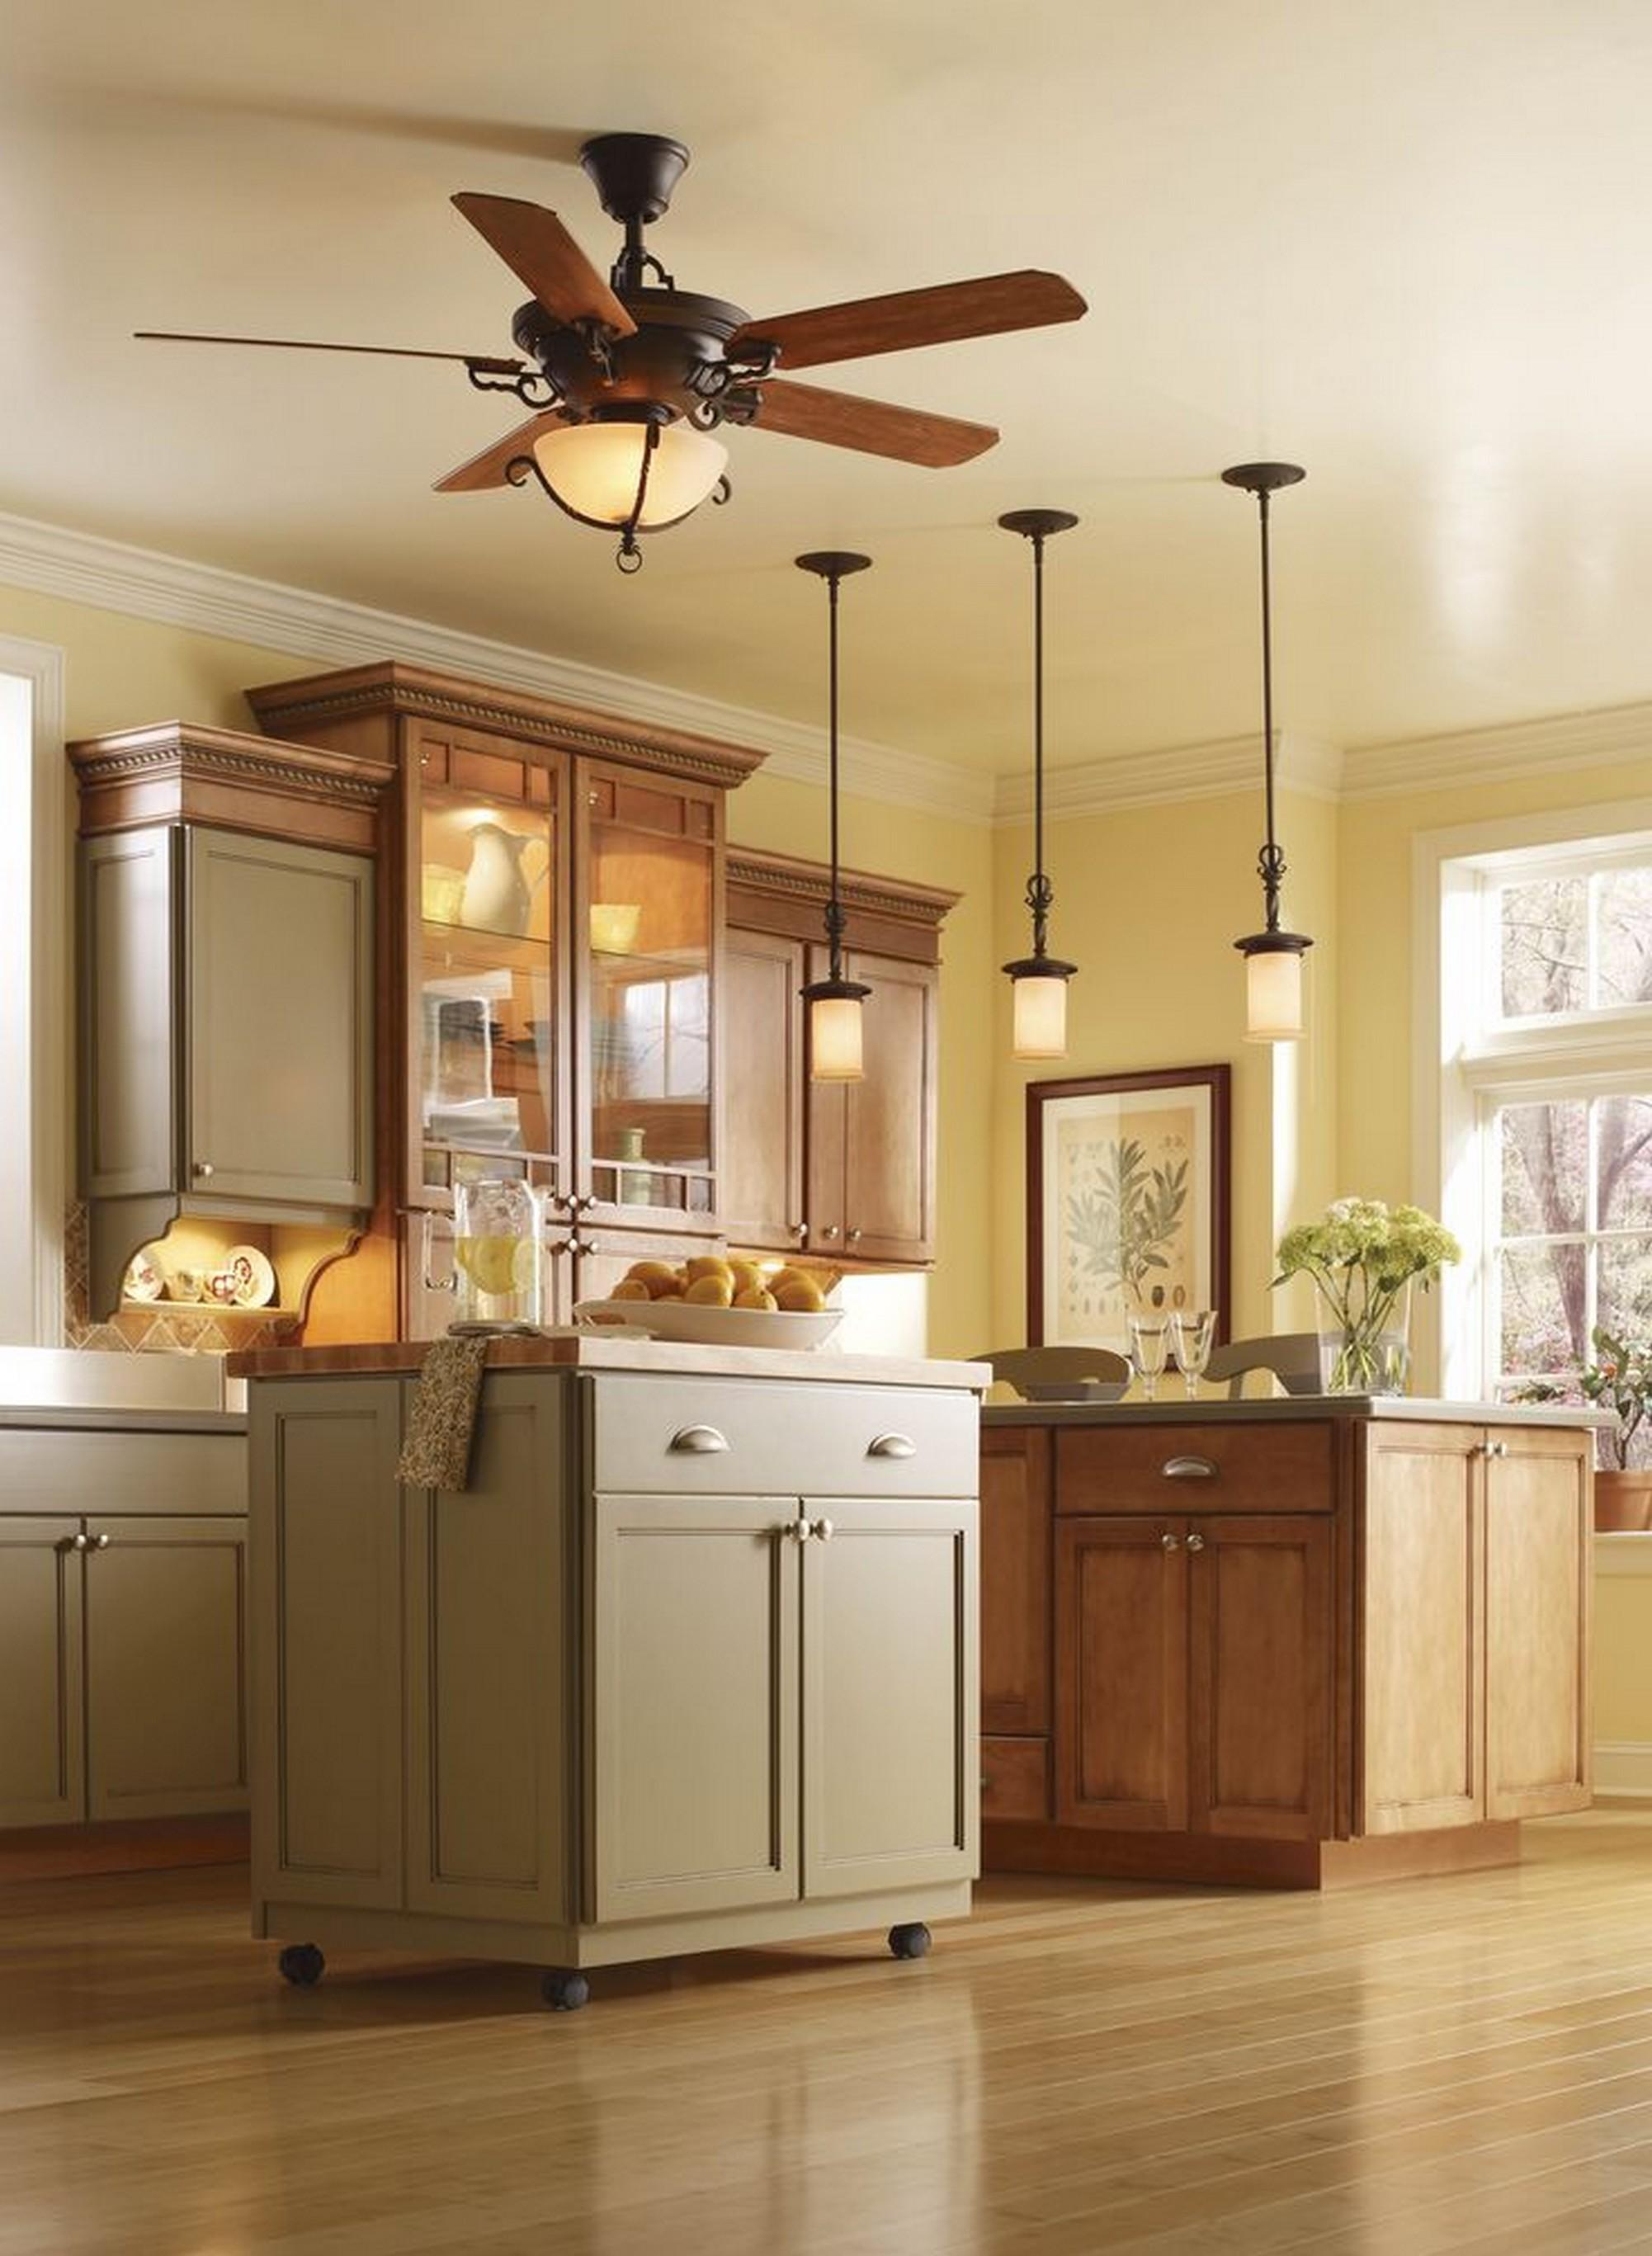 Perfect Fan Kitchen Ceiling Ideas Hanging Lighting